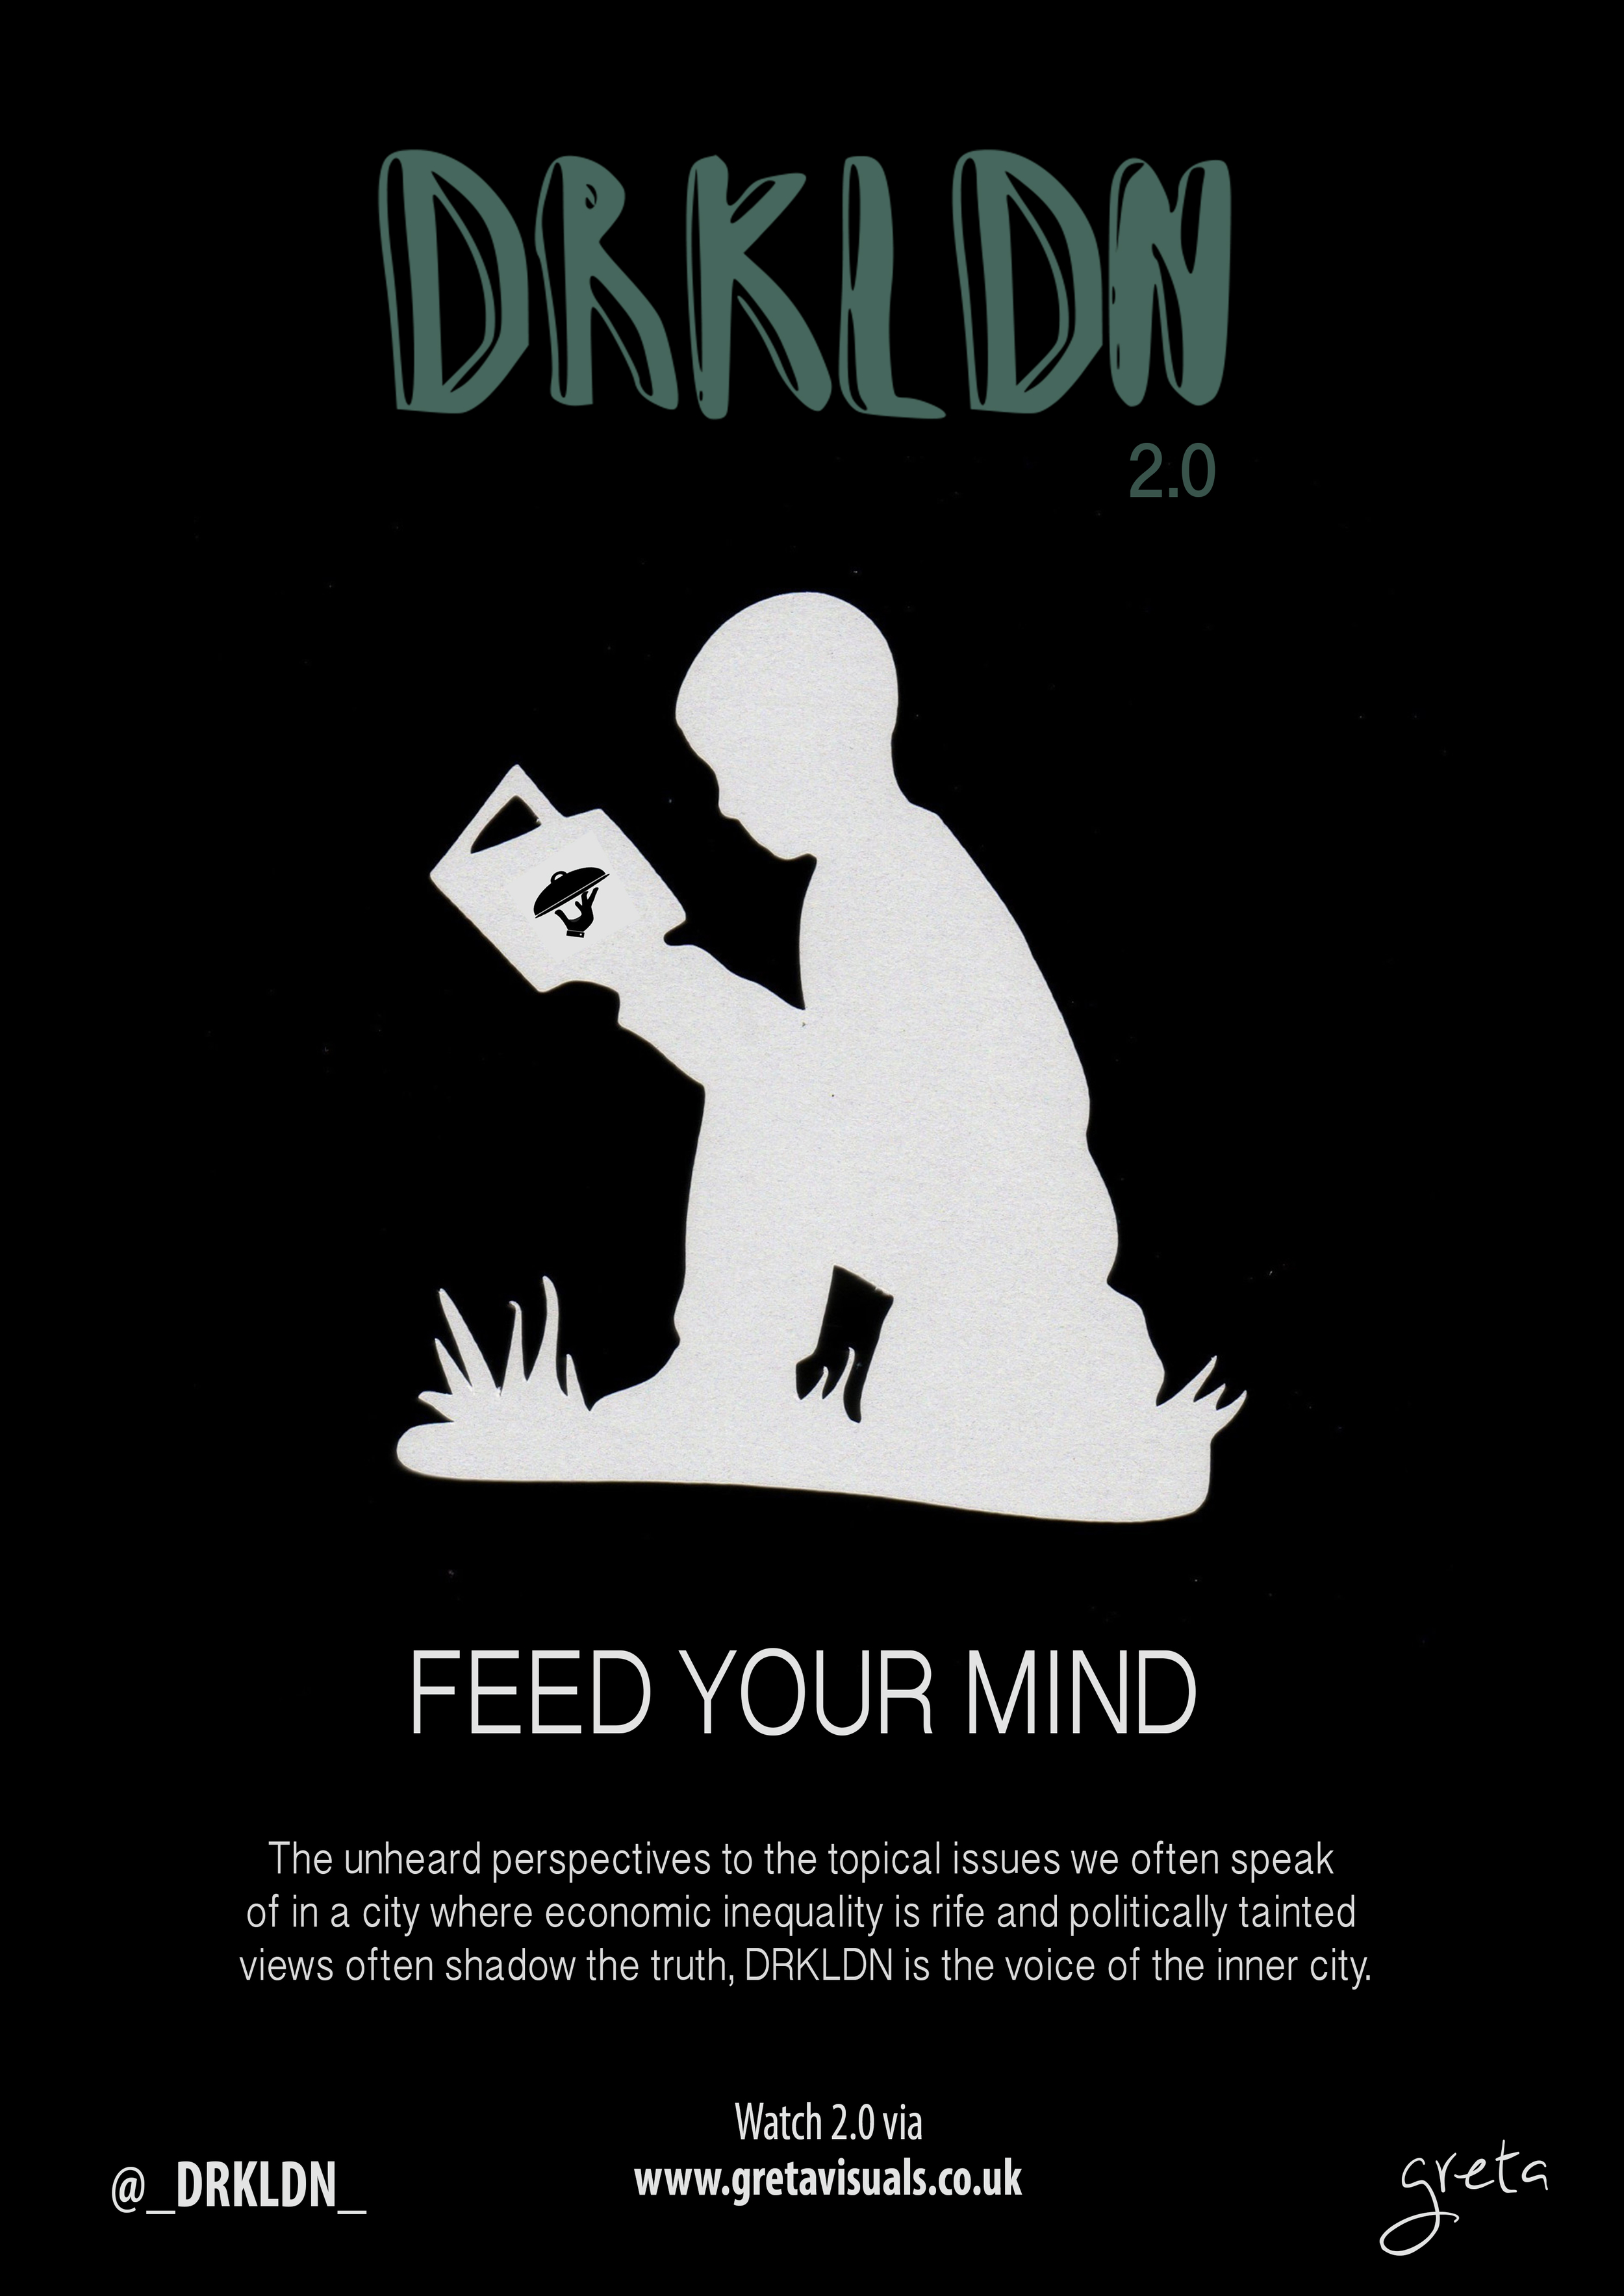 'Feed Your Mind' Digital Poster.  (DRKLDN)     Digital poster for insightful visual by DRKLDN. The 2nd instalment that capture the economic inequality within the inner city of London from unheard perspectives.  Watch the full visual right here.  (Conscious Visual)